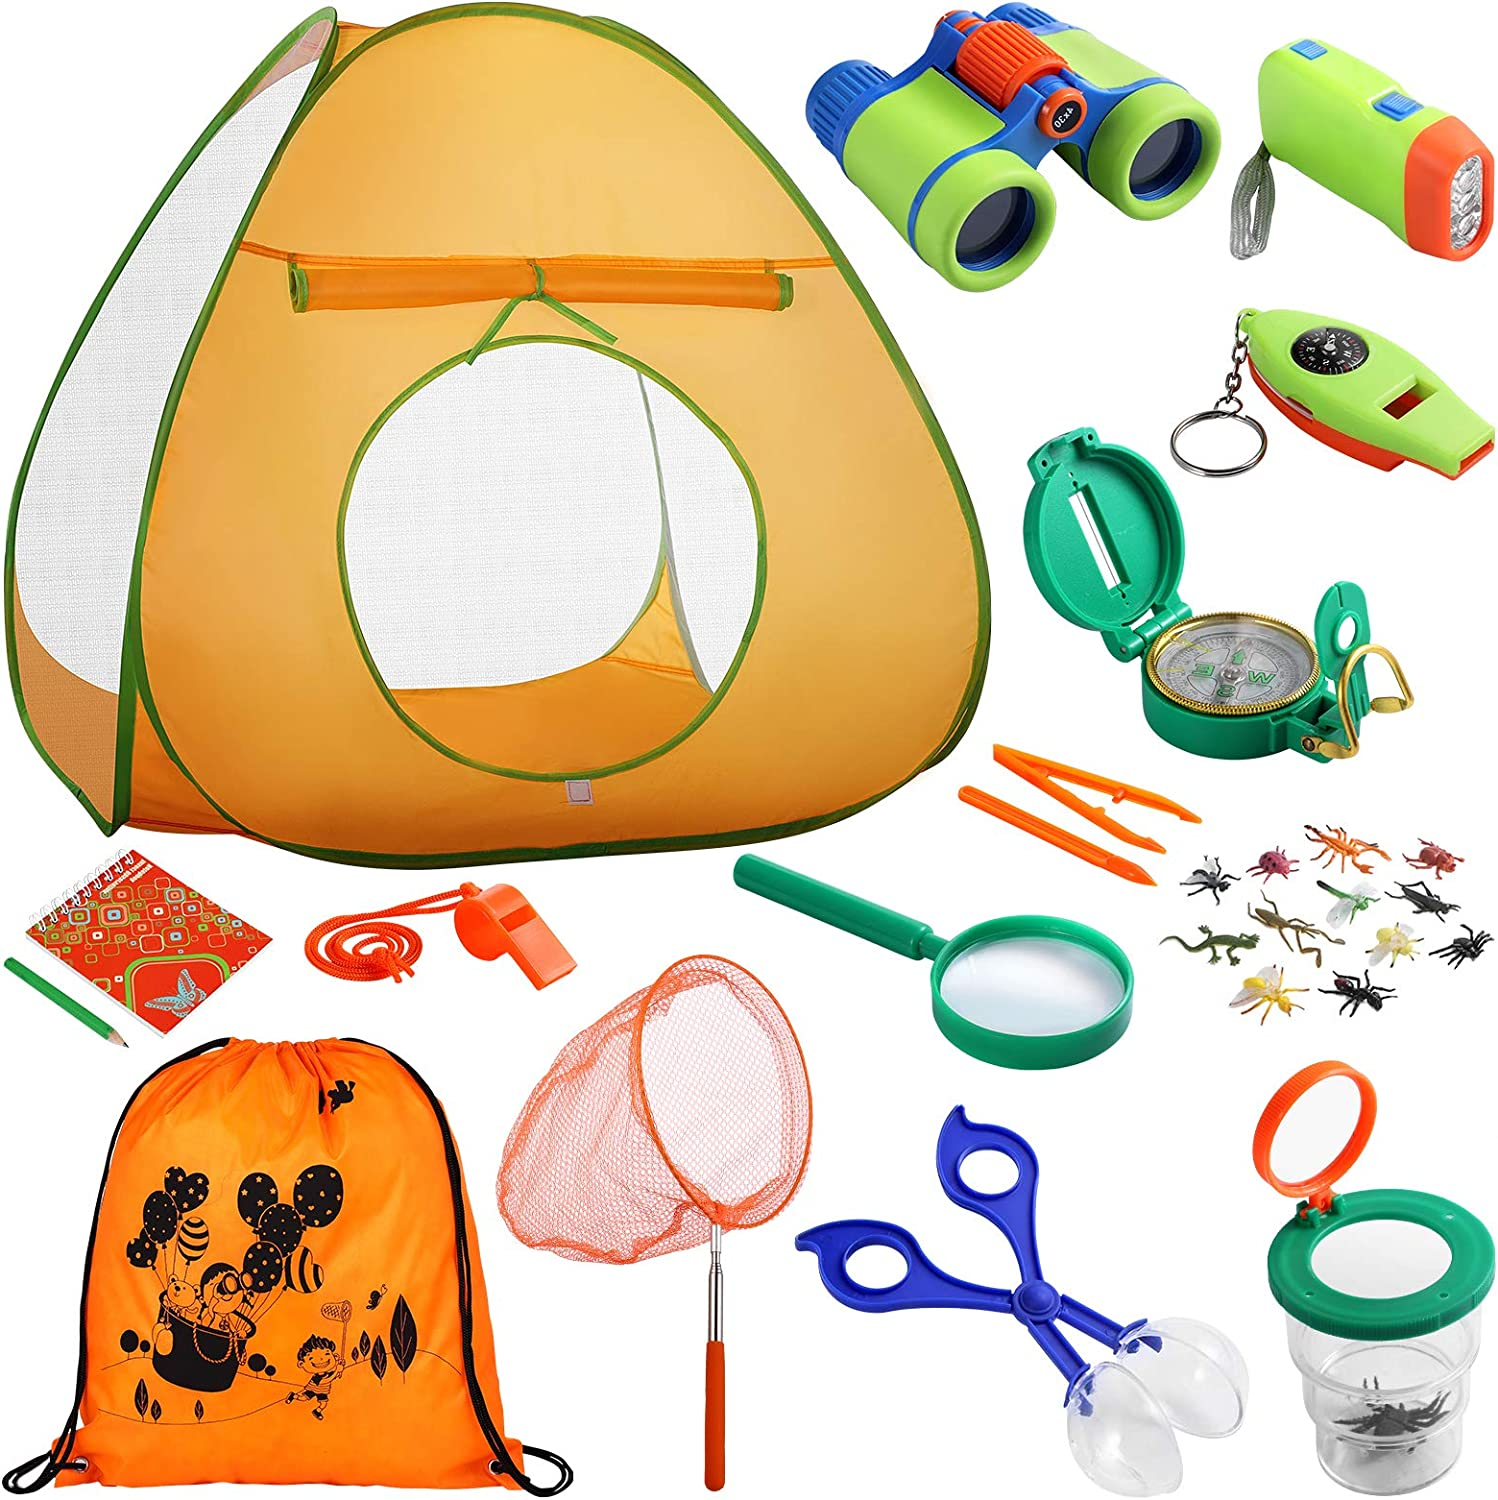 iBaseToy Kids Camping Set with Tent 28 PCS - Camping Toys Adventure Kit for Kids Toddlers Boys - Including Binoculars, Compass, Flashlight, Bug Catching Kit, Camping Tent and etc